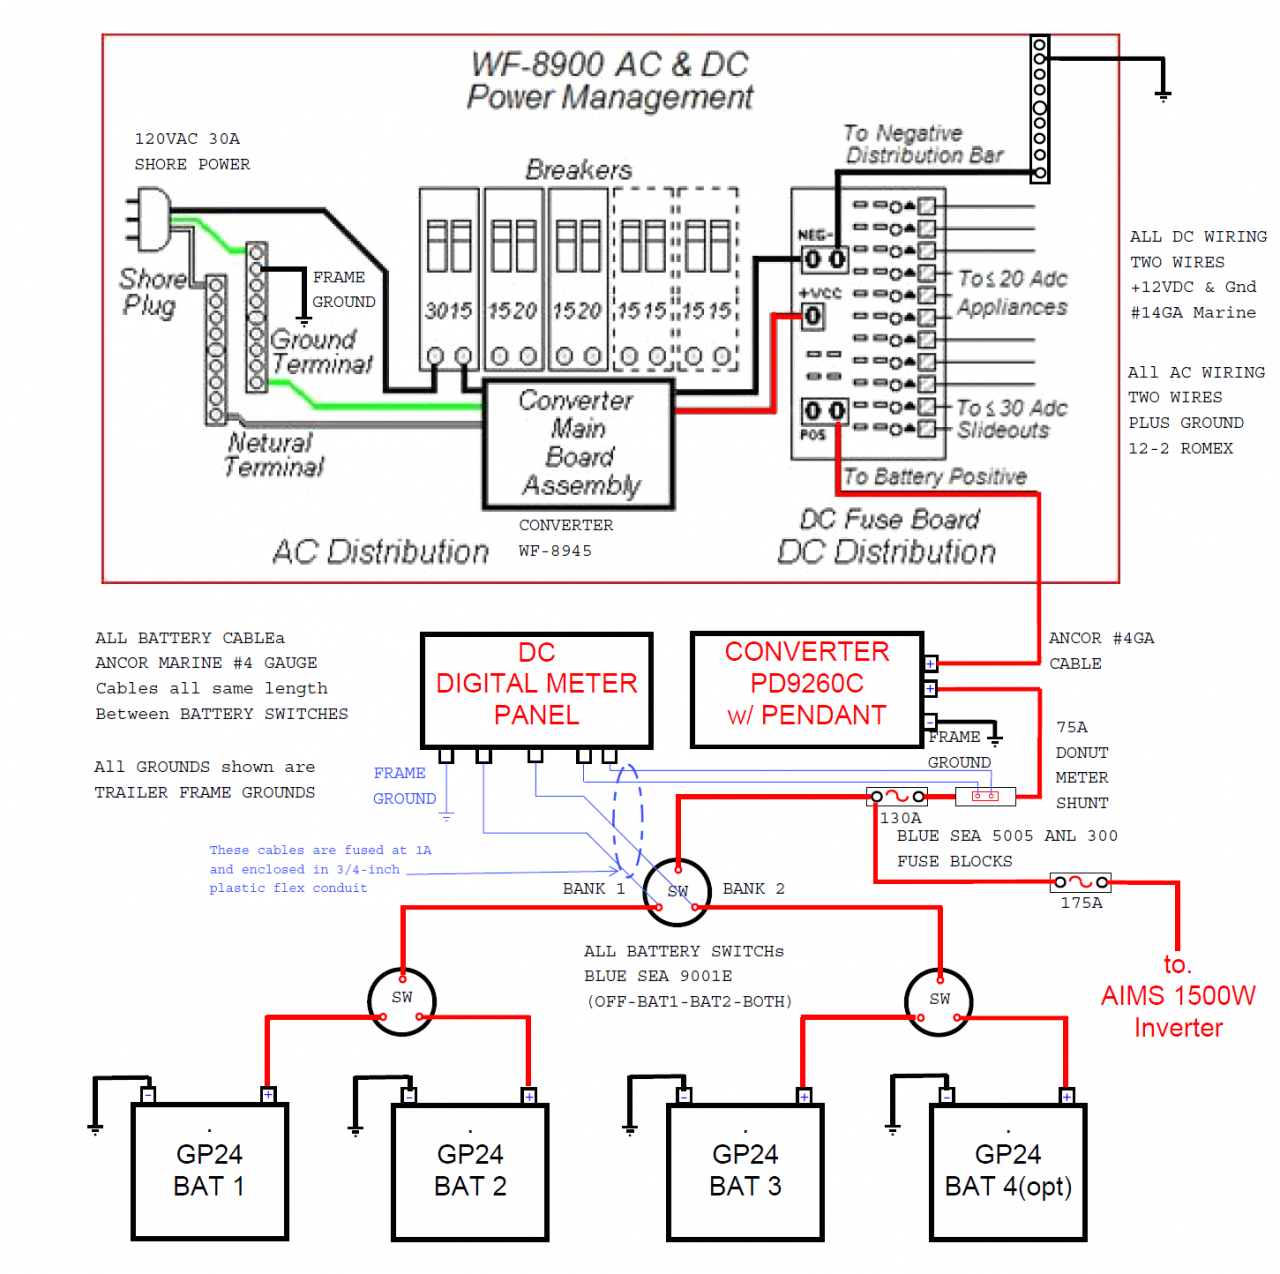 Marine inverter wiring diagram trusted wiring diagrams marine inverter charger wiring diagram sample wiring diagram sample solar panel wiring diagram marine inverter wiring diagram swarovskicordoba Image collections